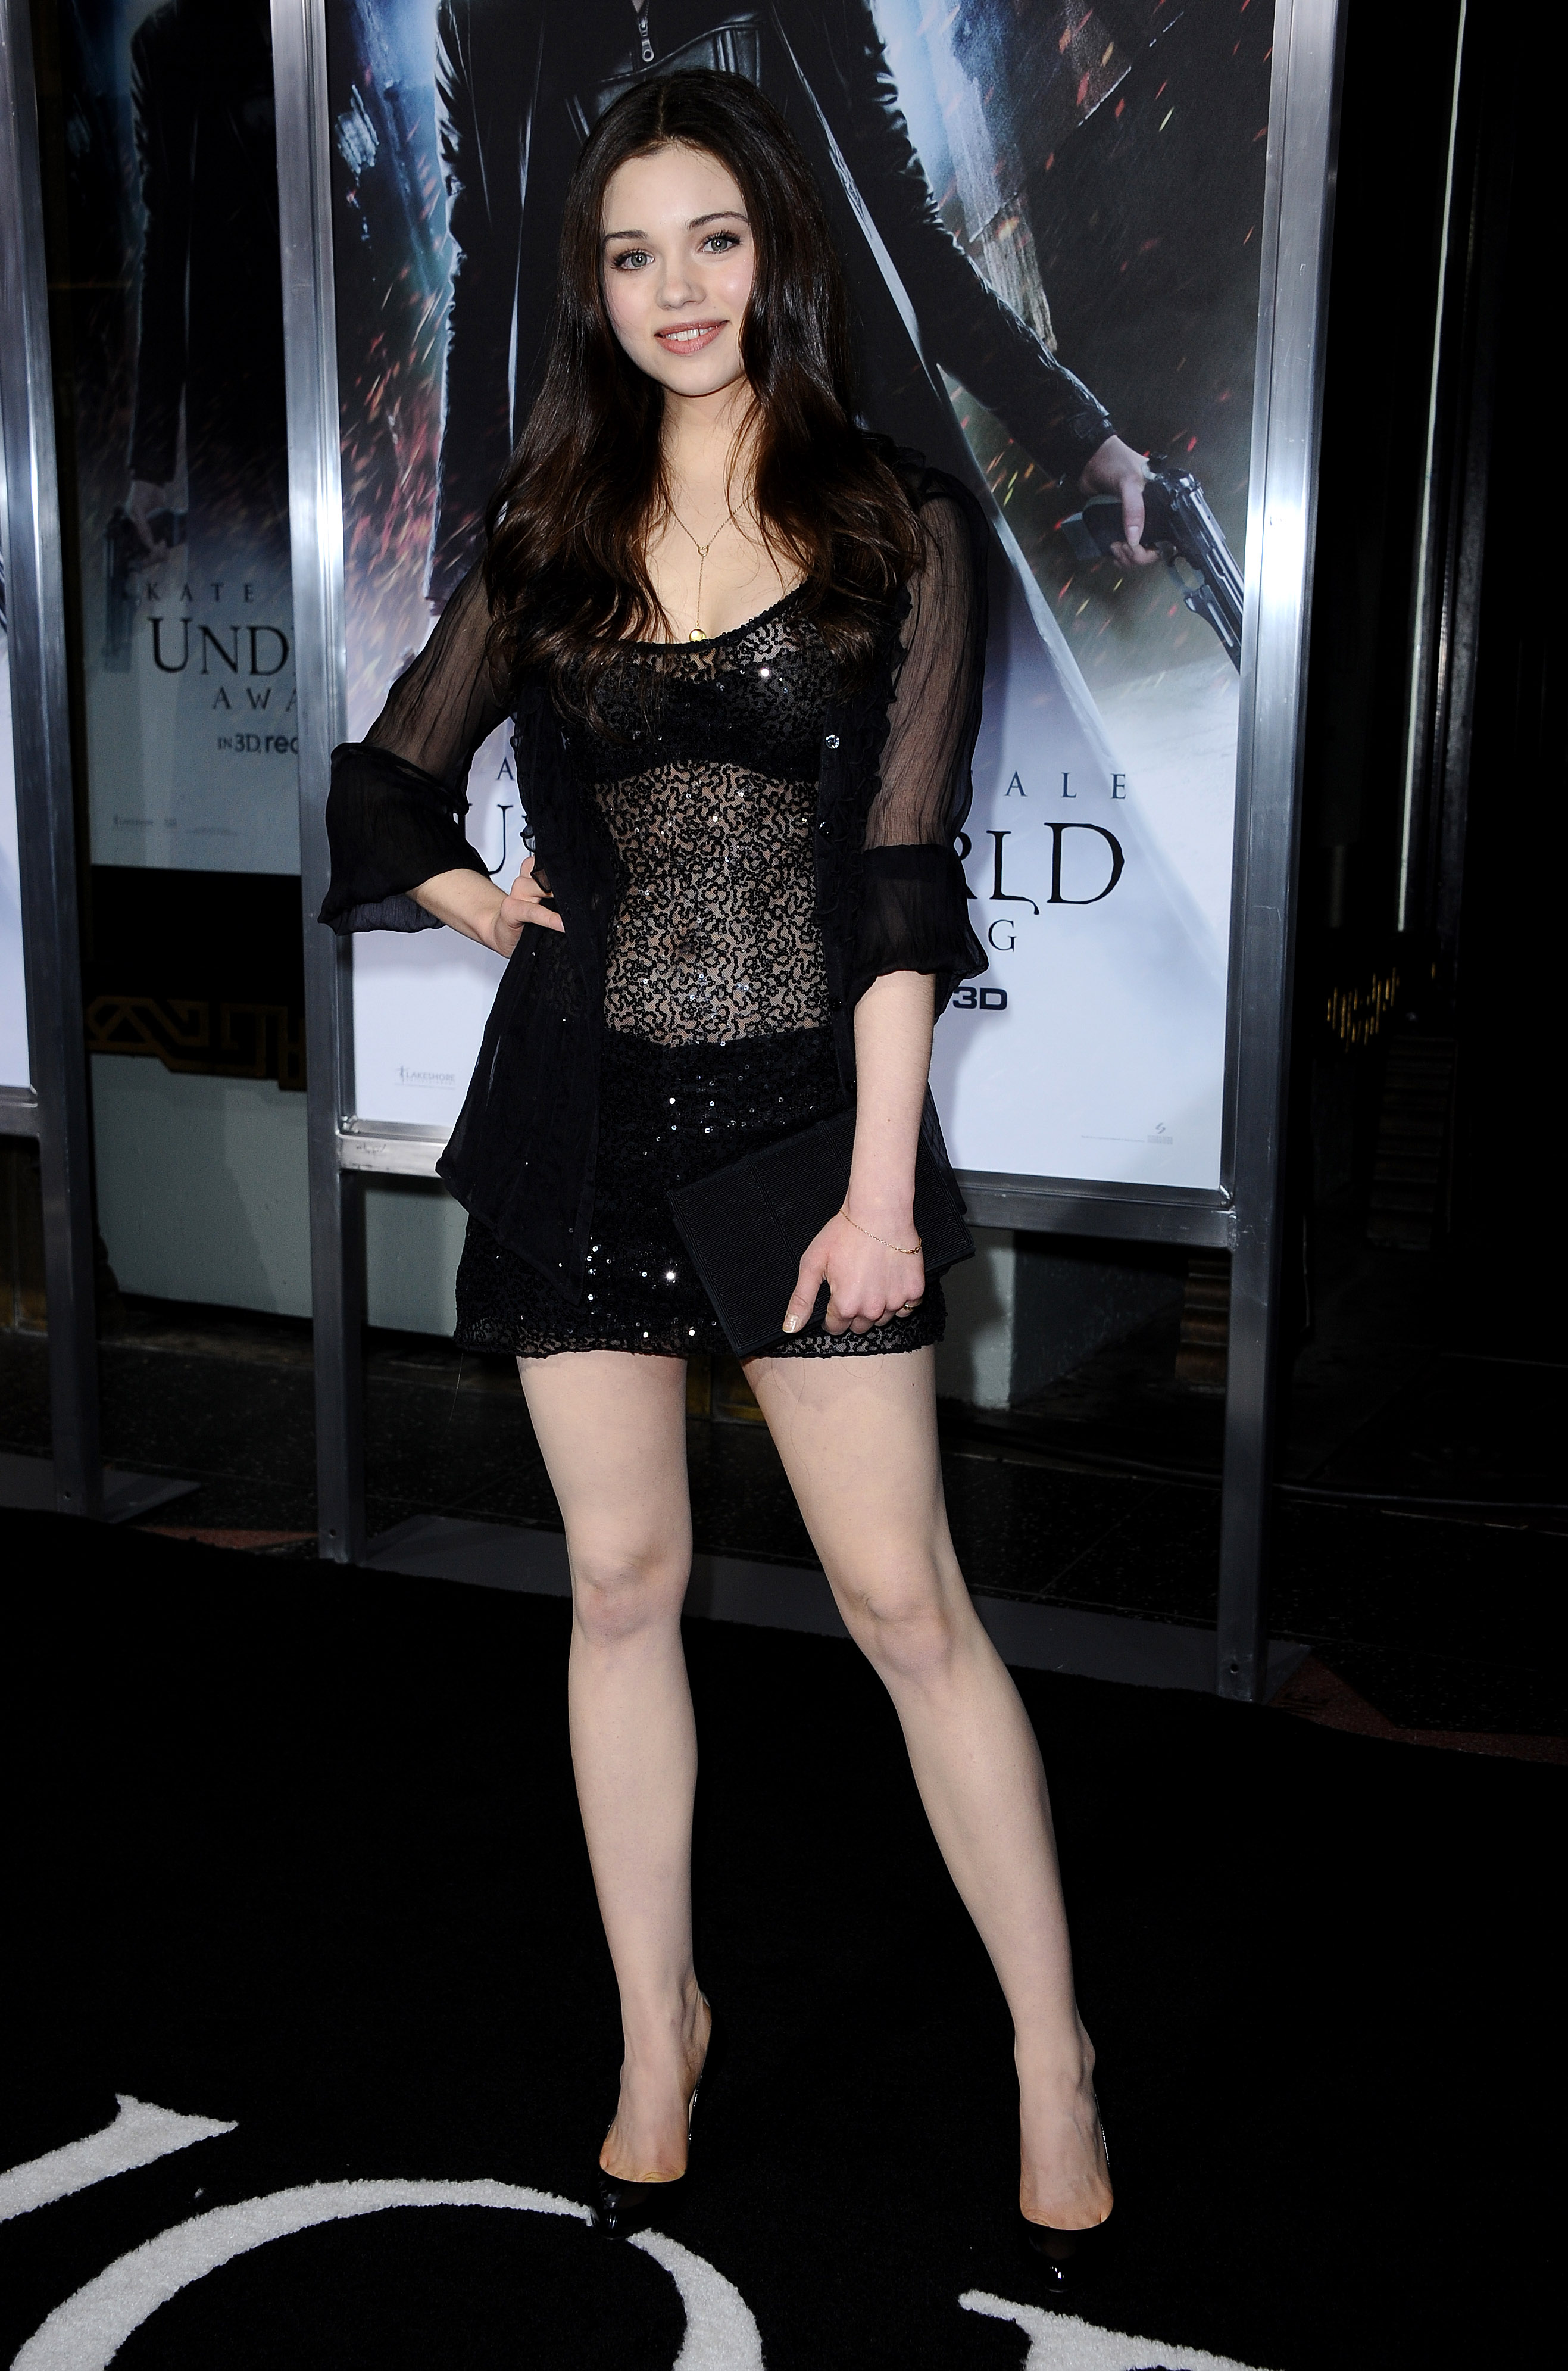 Feet India Eisley nudes (66 foto and video), Tits, Hot, Instagram, butt 2006